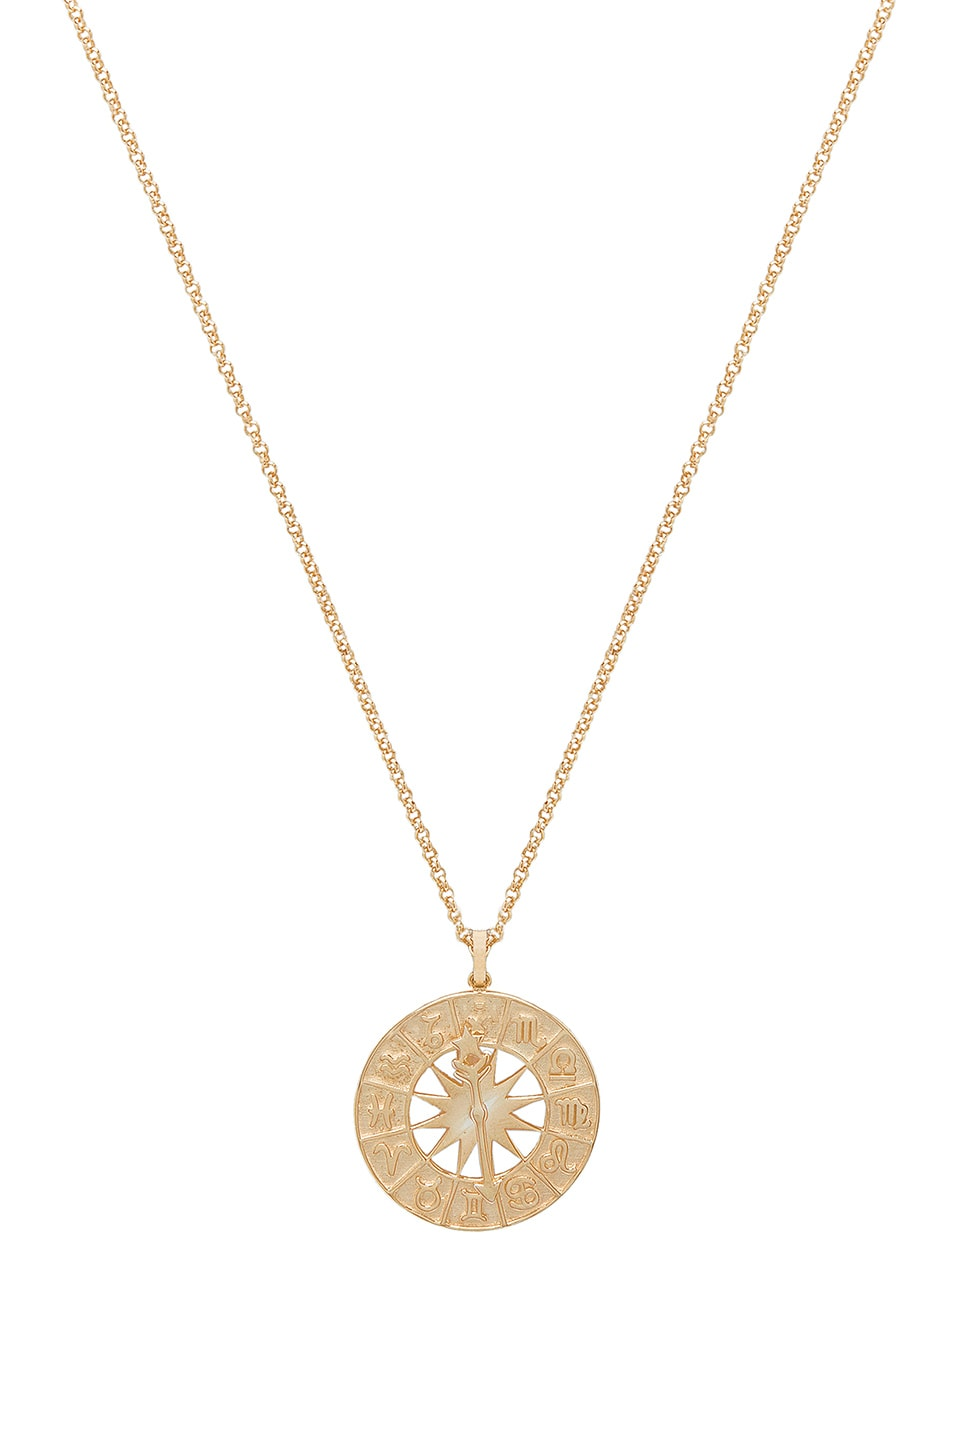 NATALIE B JEWELRY WHAT'S YOUR SIGN NECKLACE